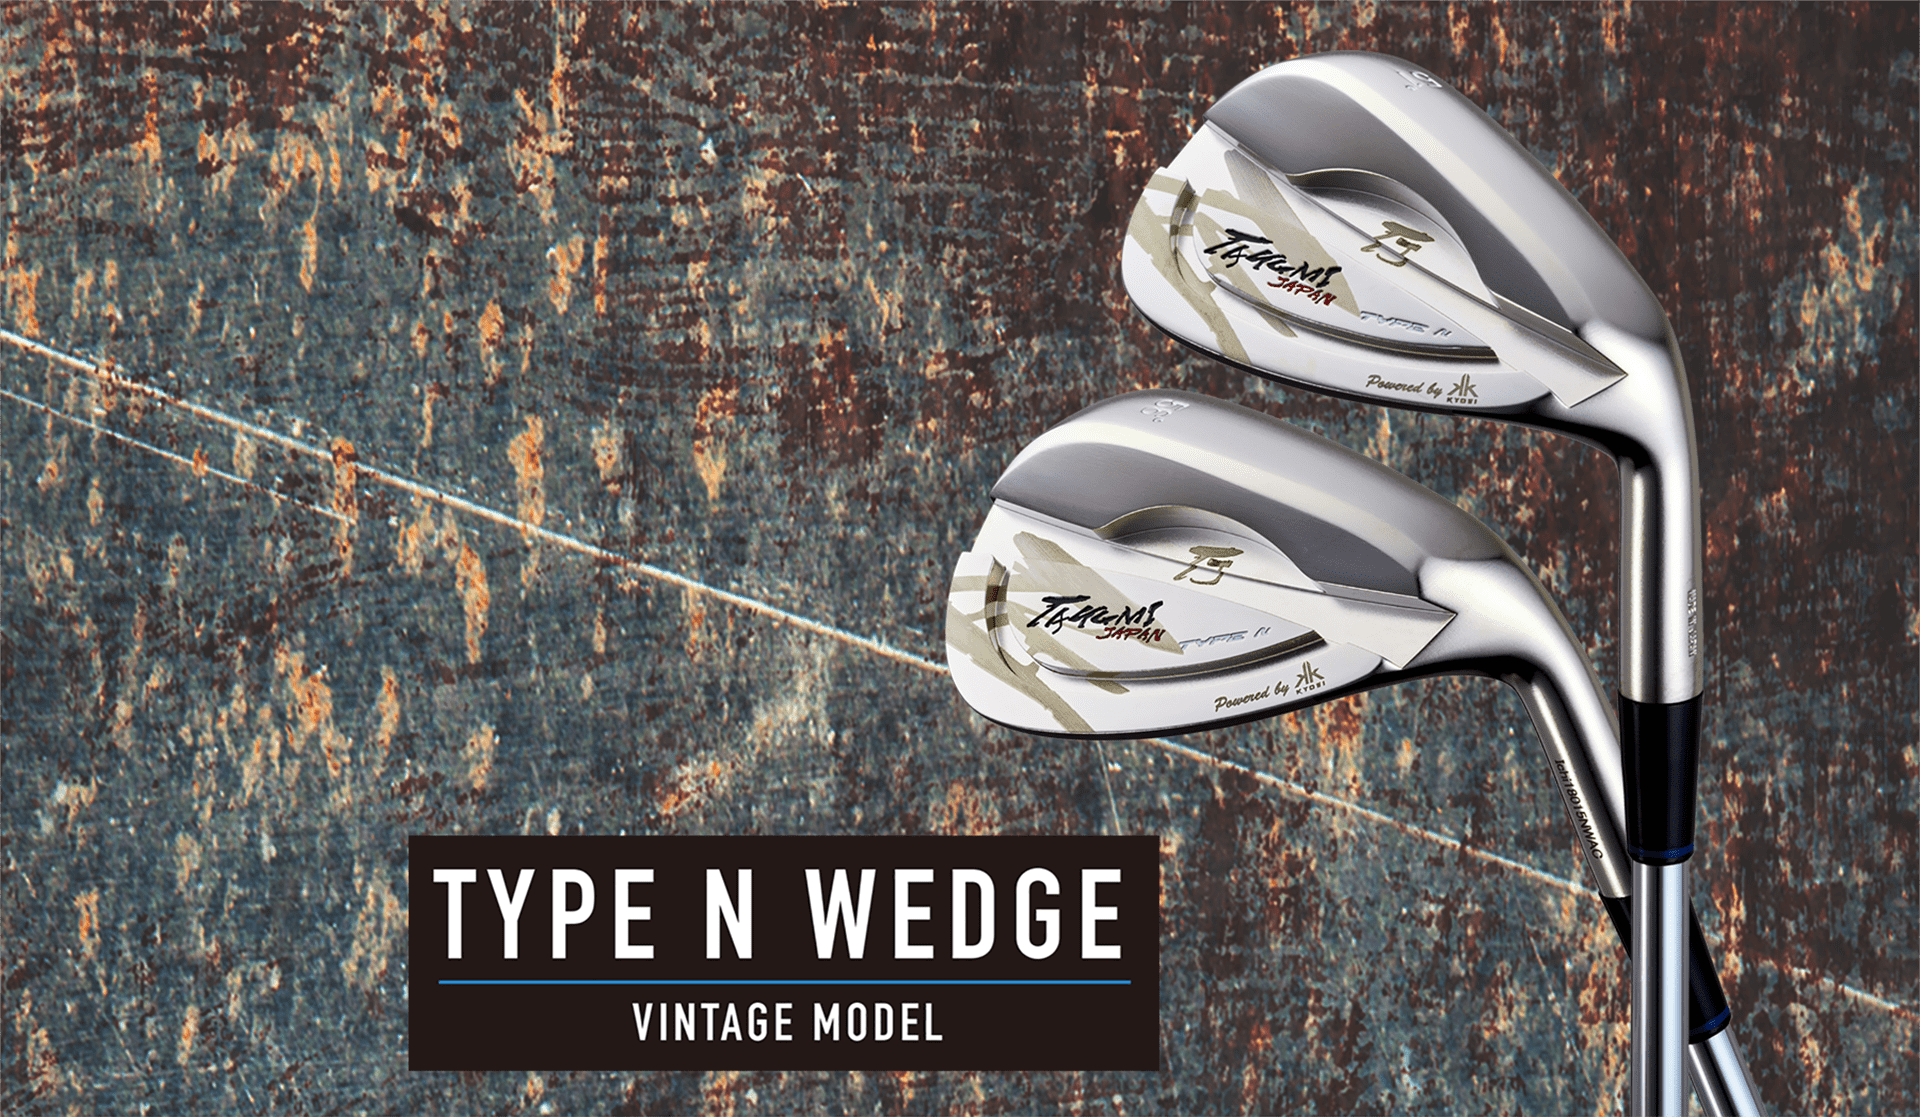 TYPE N WEDGE